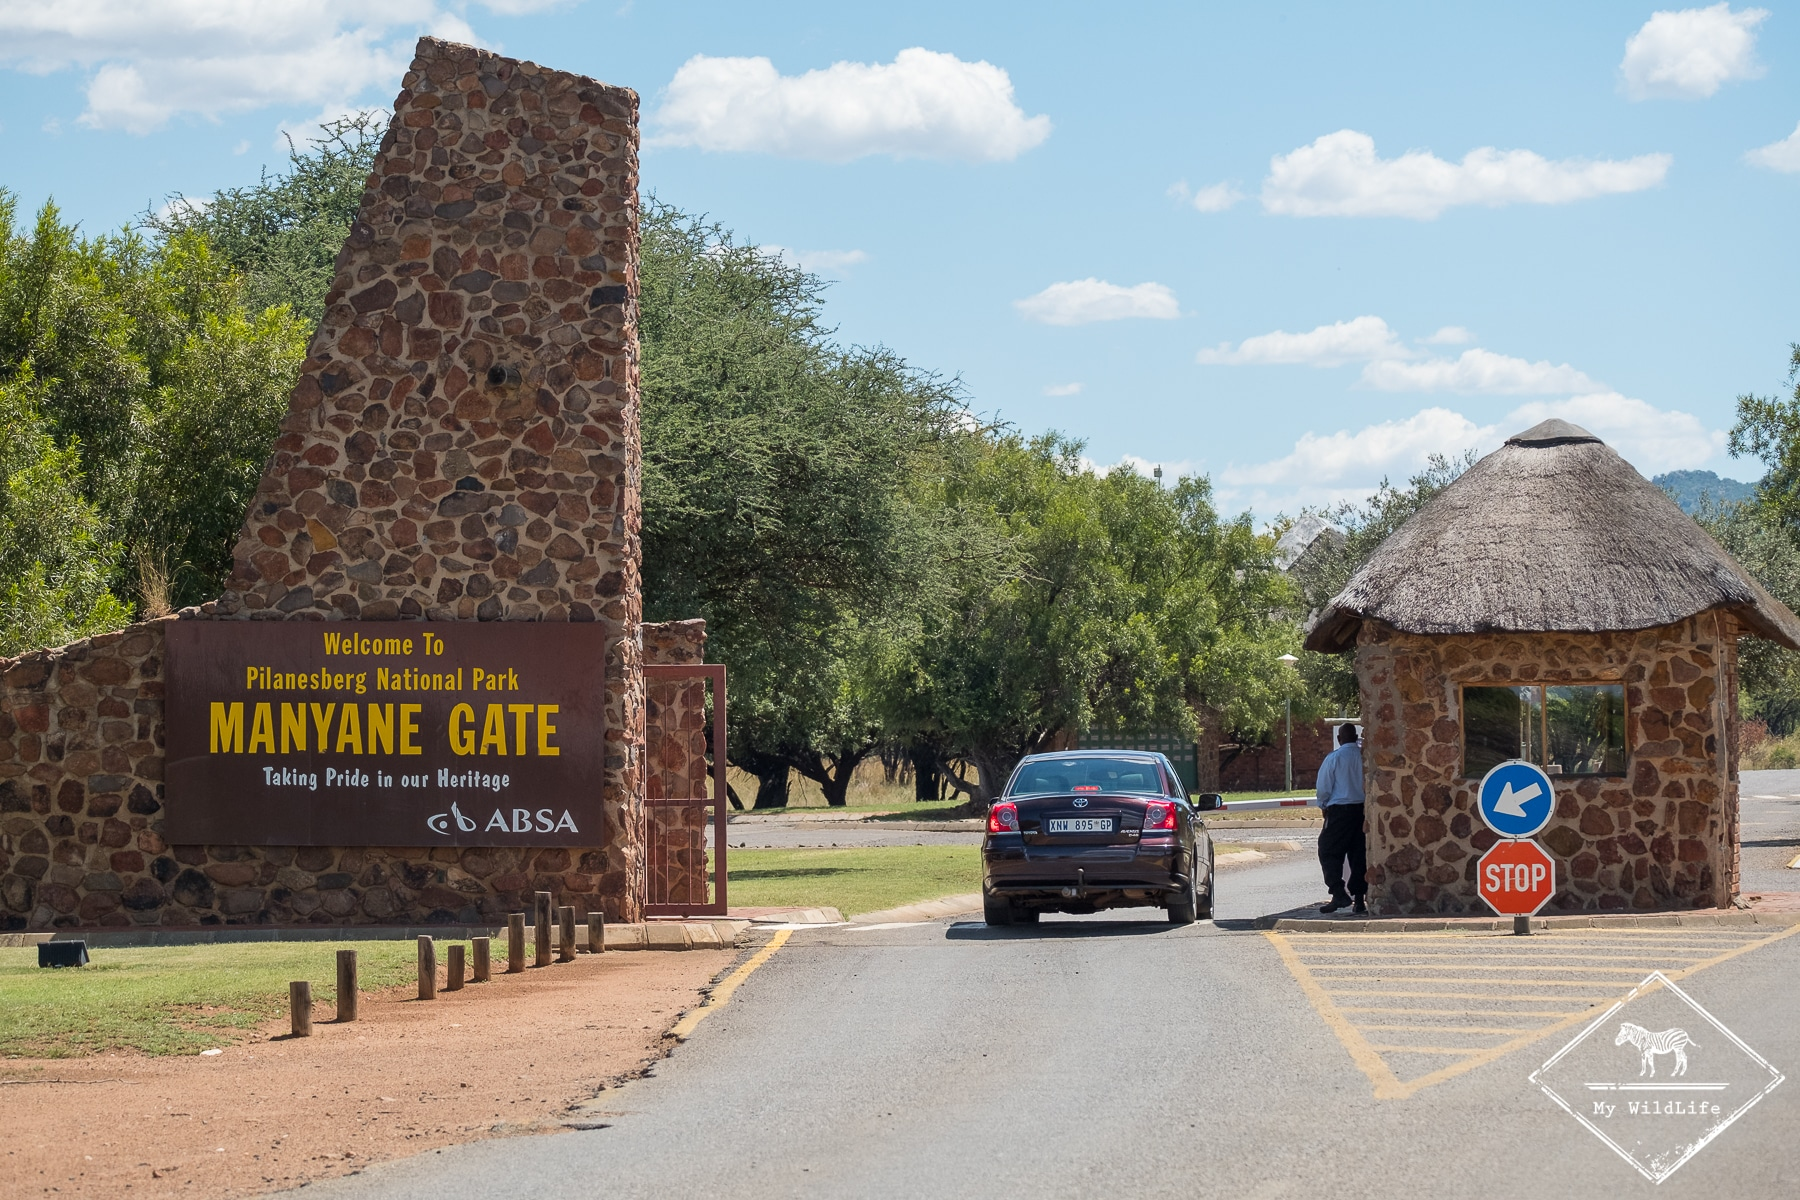 Manyane Gate, parc national Pilanesberg